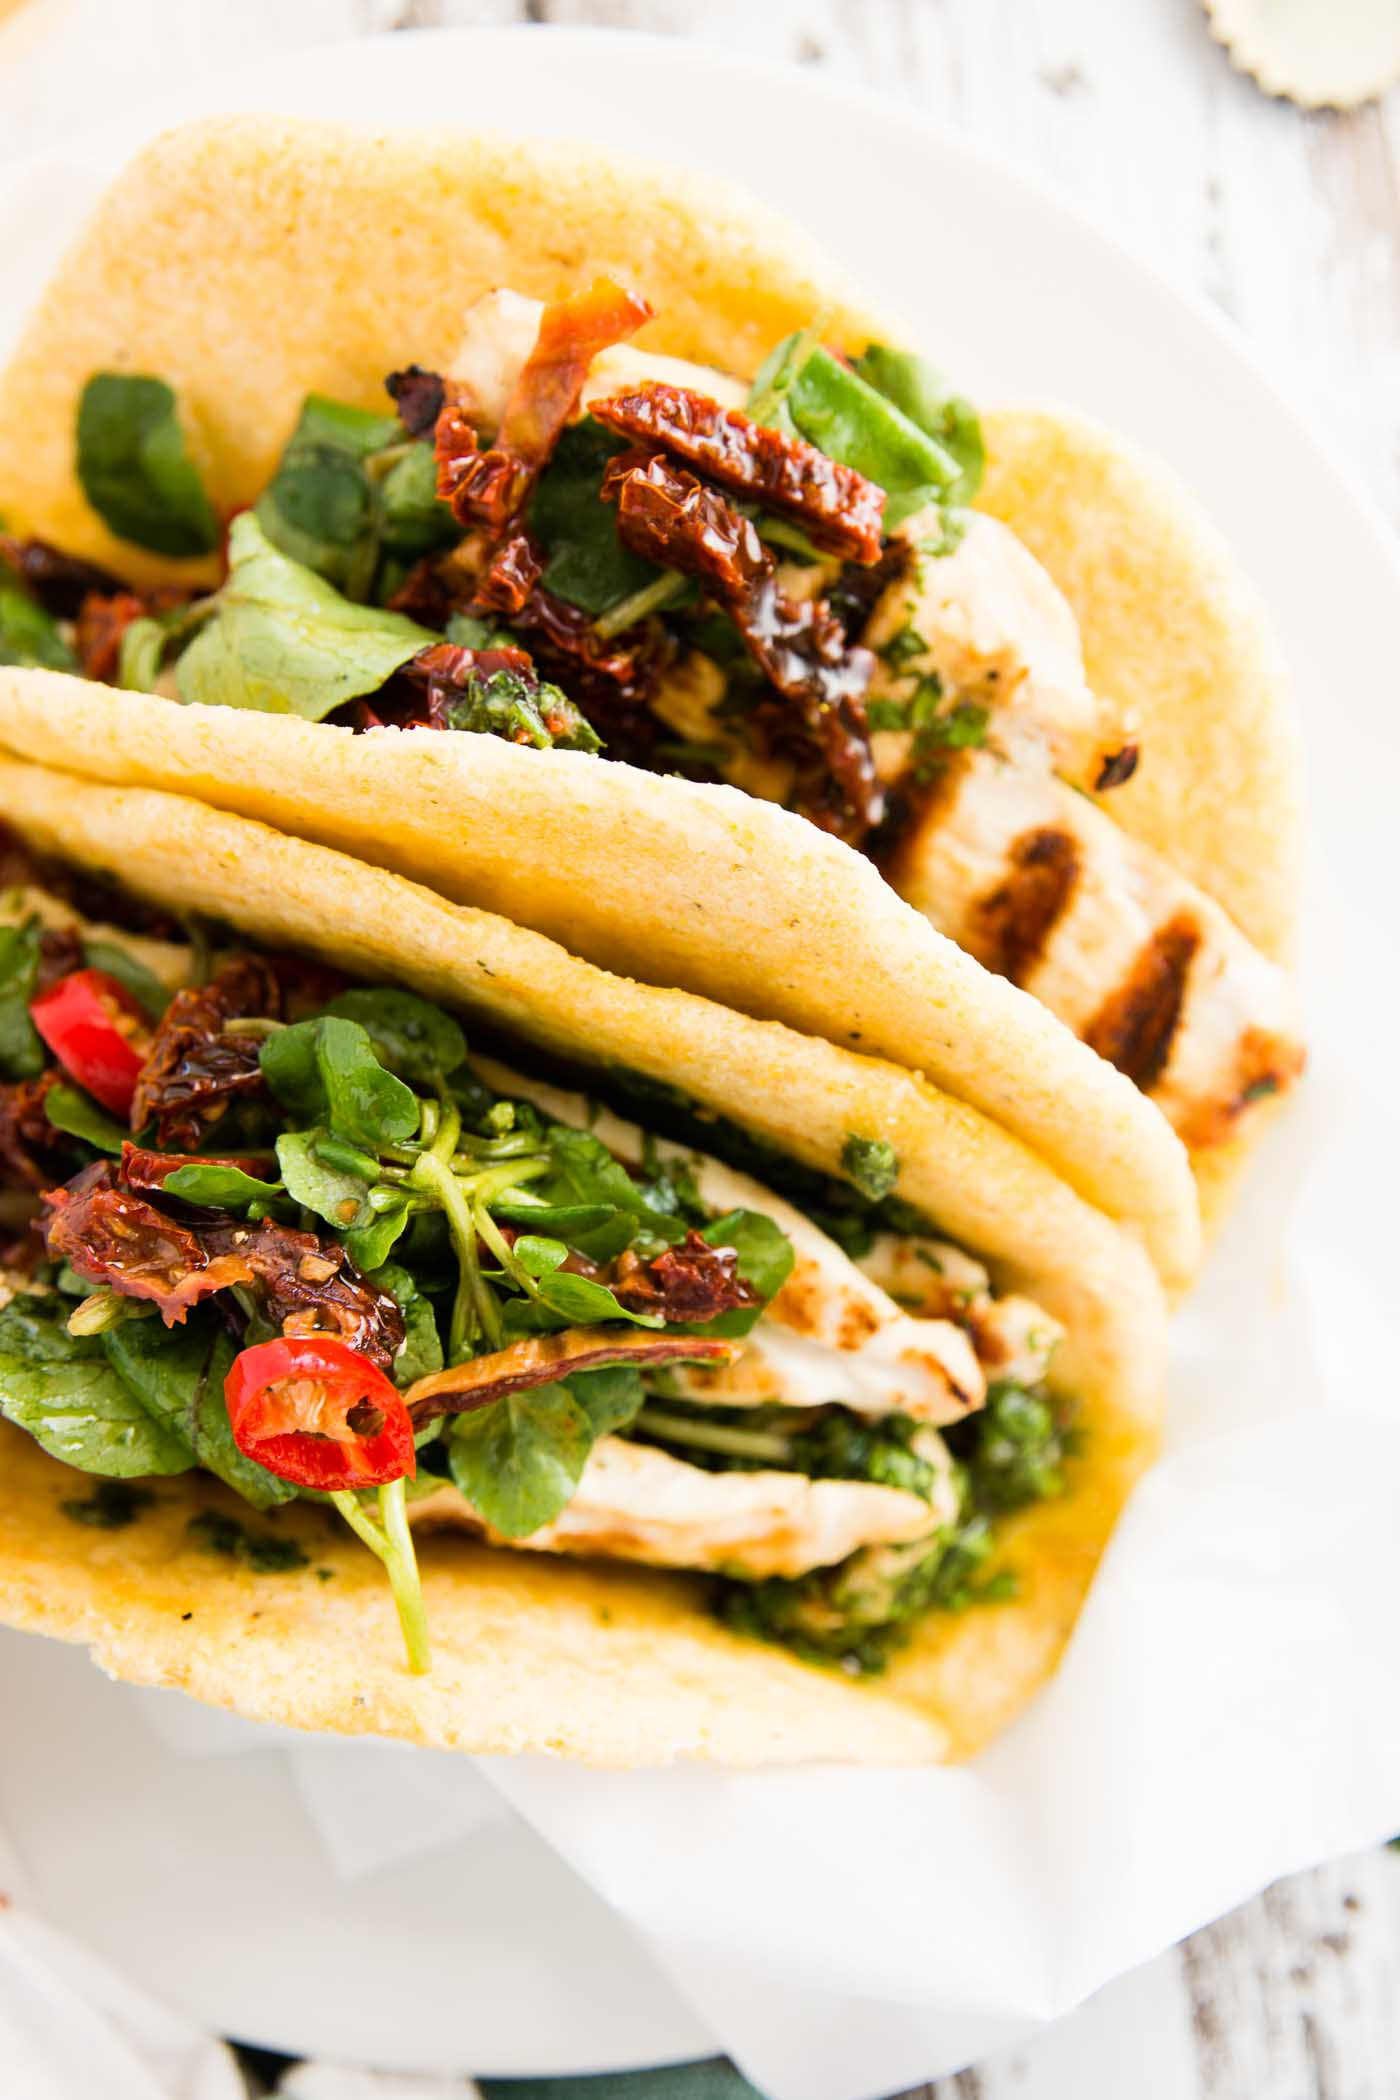 Chimichurri-Chicken-Tacos-with-Sundried-Tomato-Salsa-Recipe-18